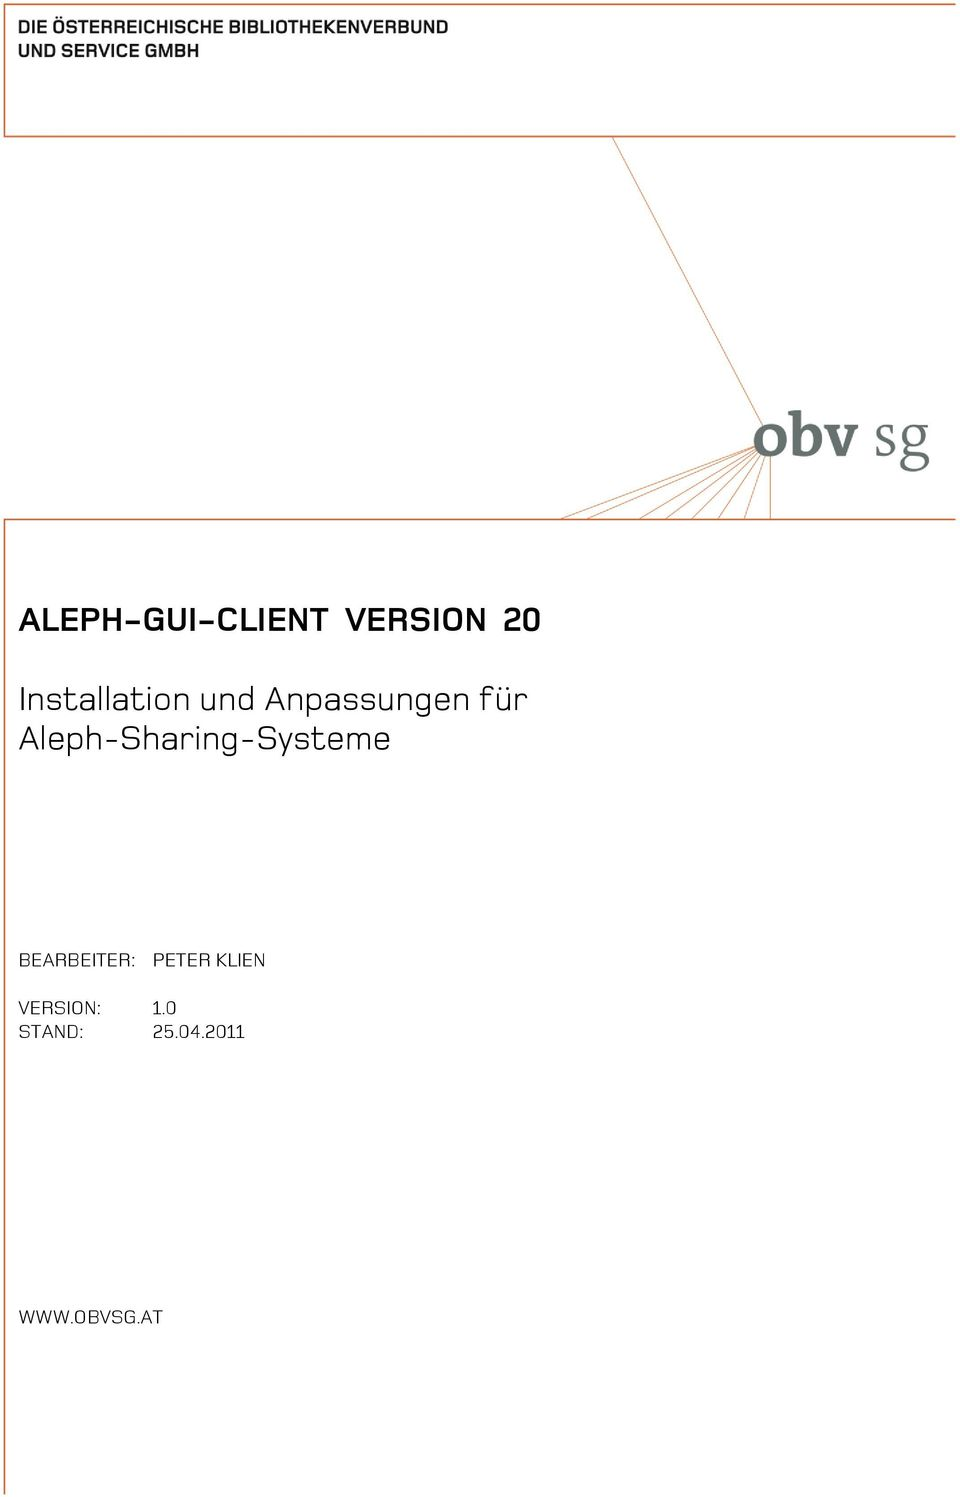 Aleph-Sharing-Systeme BEARBEITER: